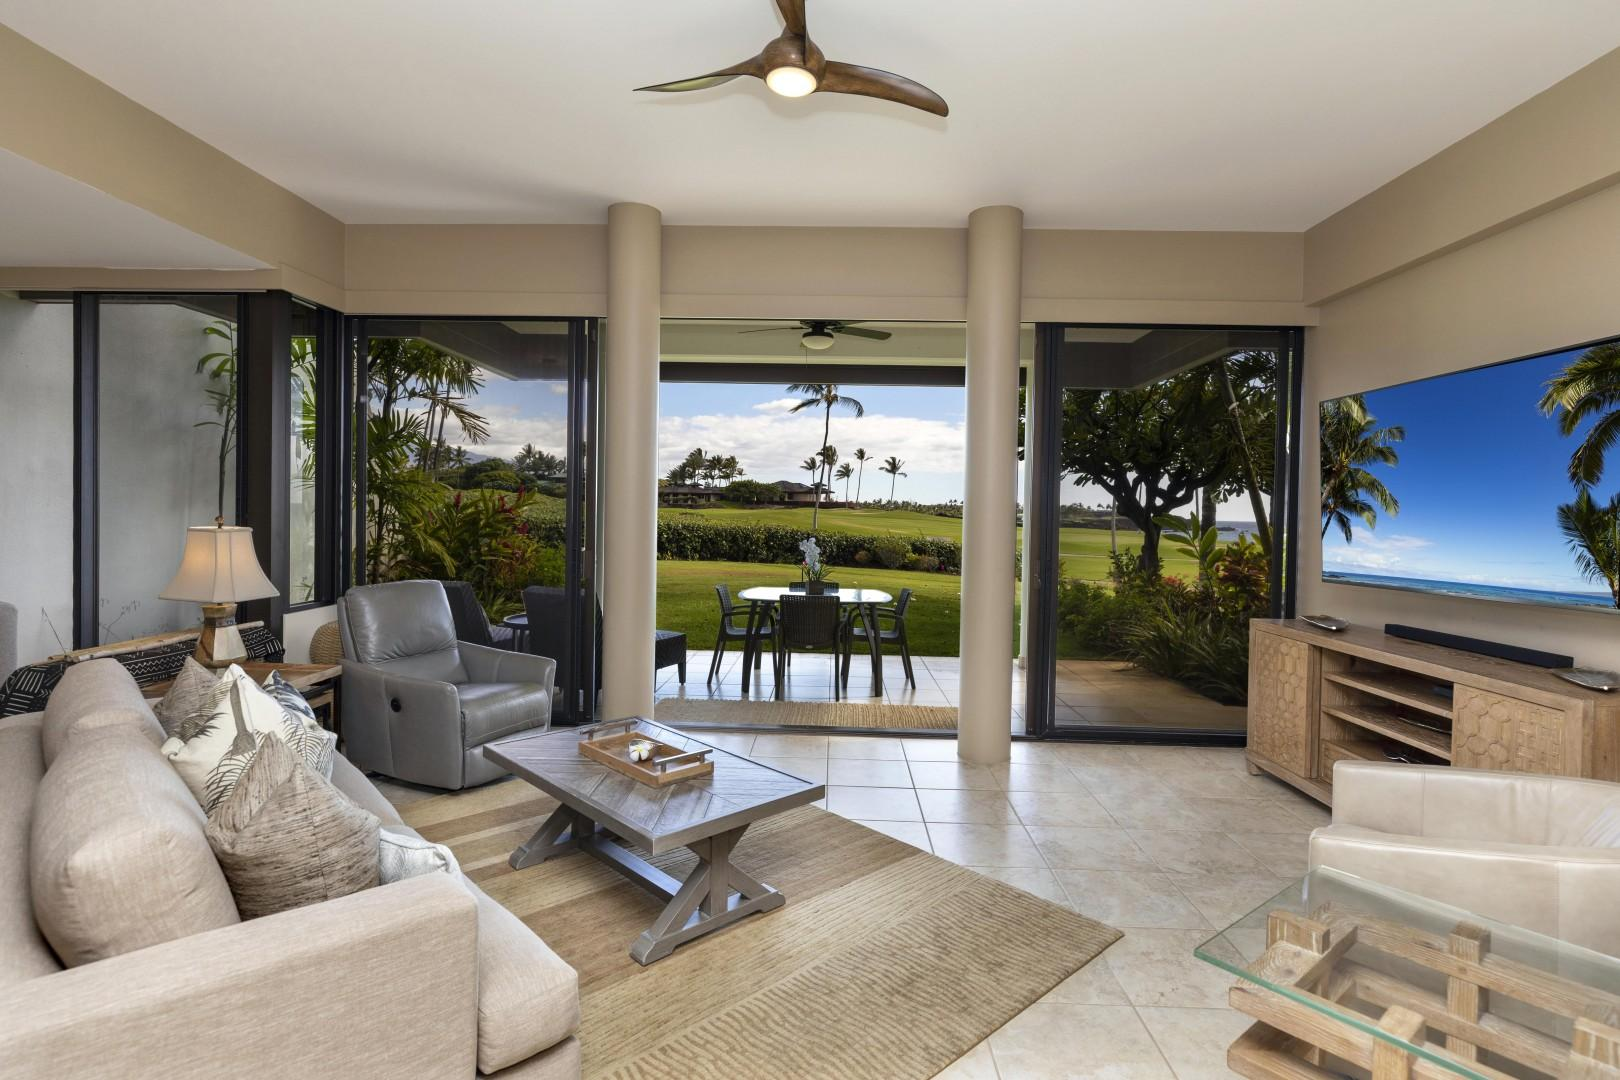 Easy access to the lanai and beautiful views from the living room.